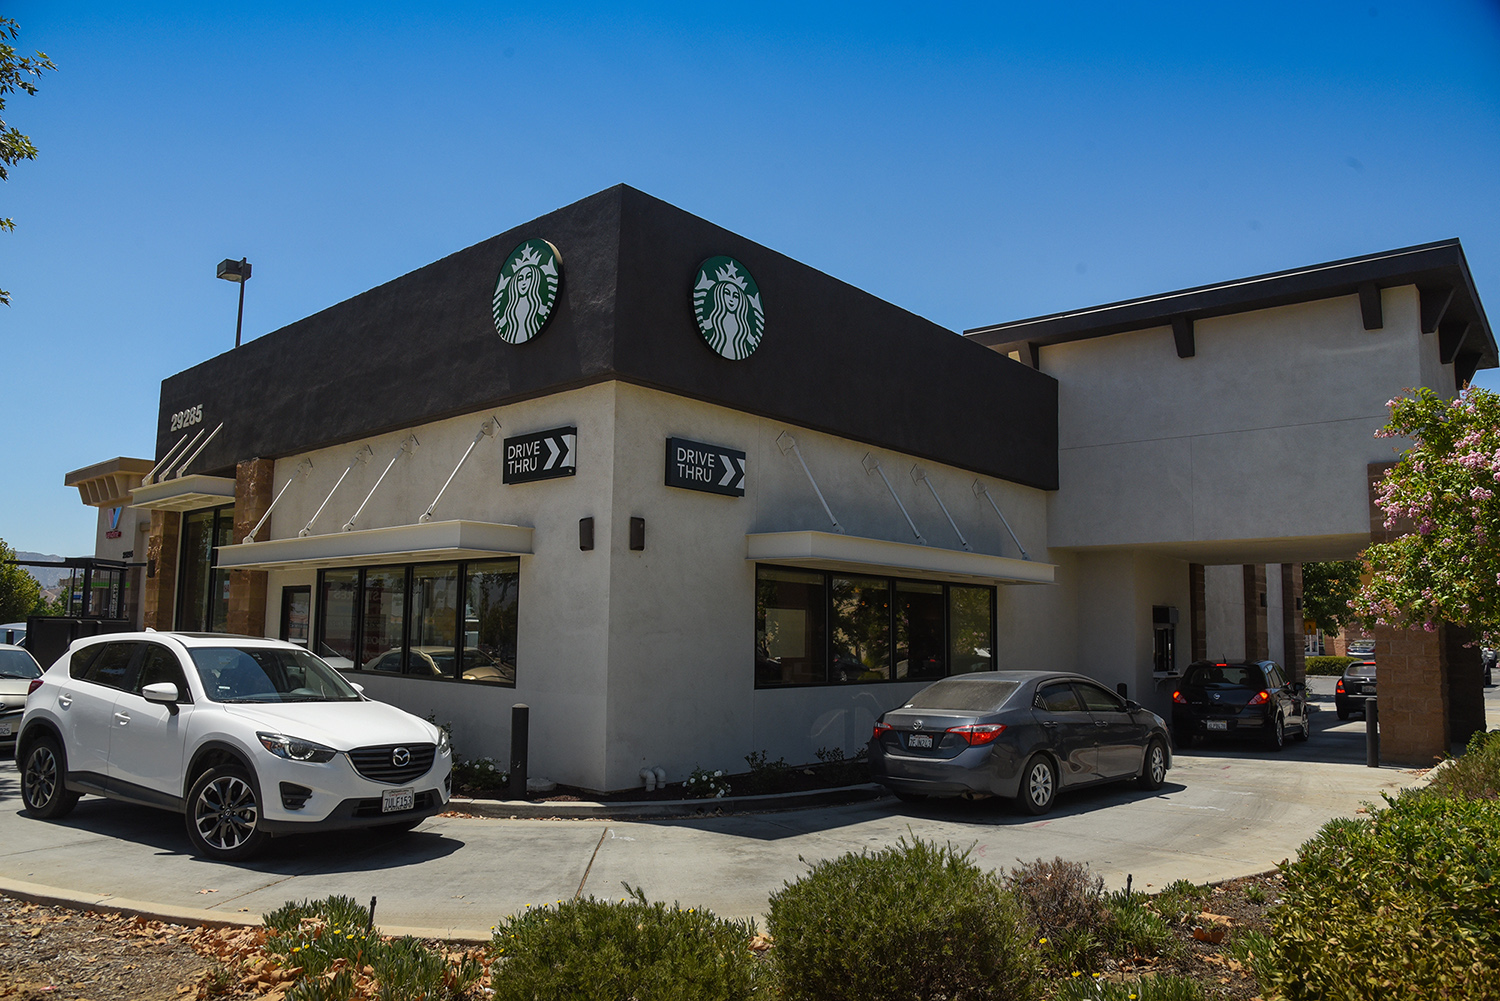 Hanley Investment Group Sells Single-Tenant Starbucks Drive-Thru at Costco-Anchored Shopping Center in Inland Empire for $3.8 Million